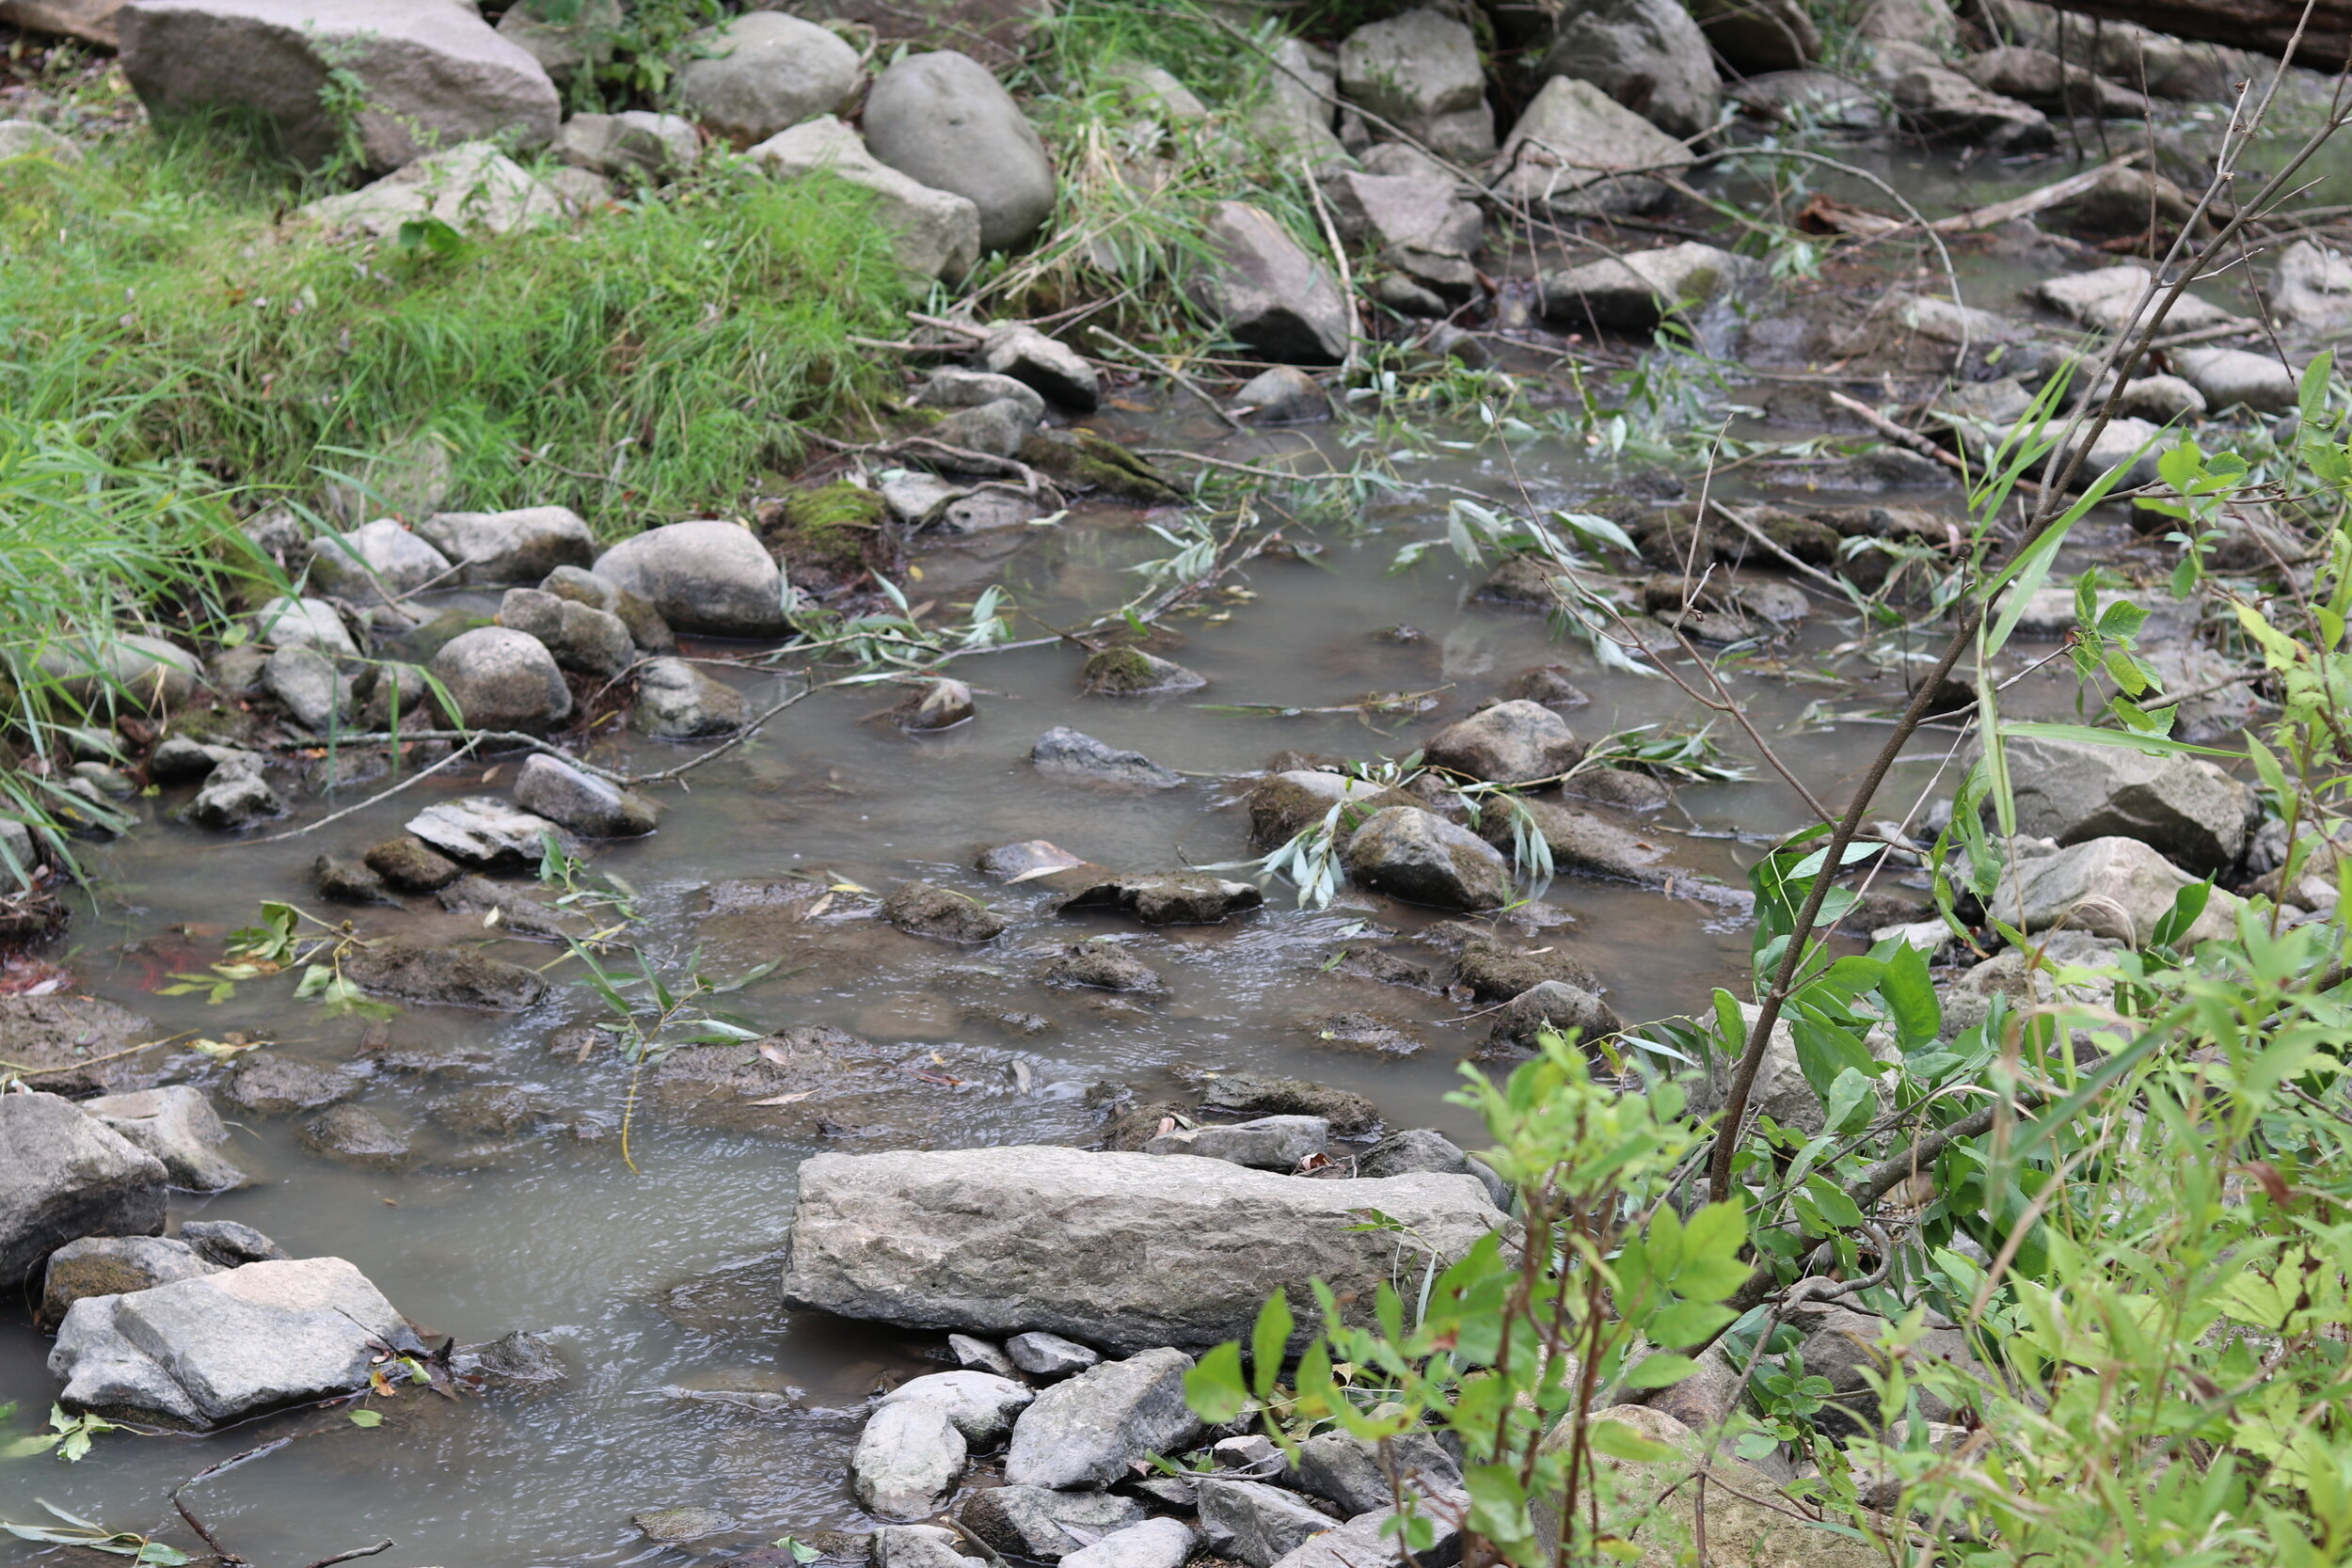 By the end of the day, Fish Creek was flowing much more unhindered by woody debris thanks to our volunteers!